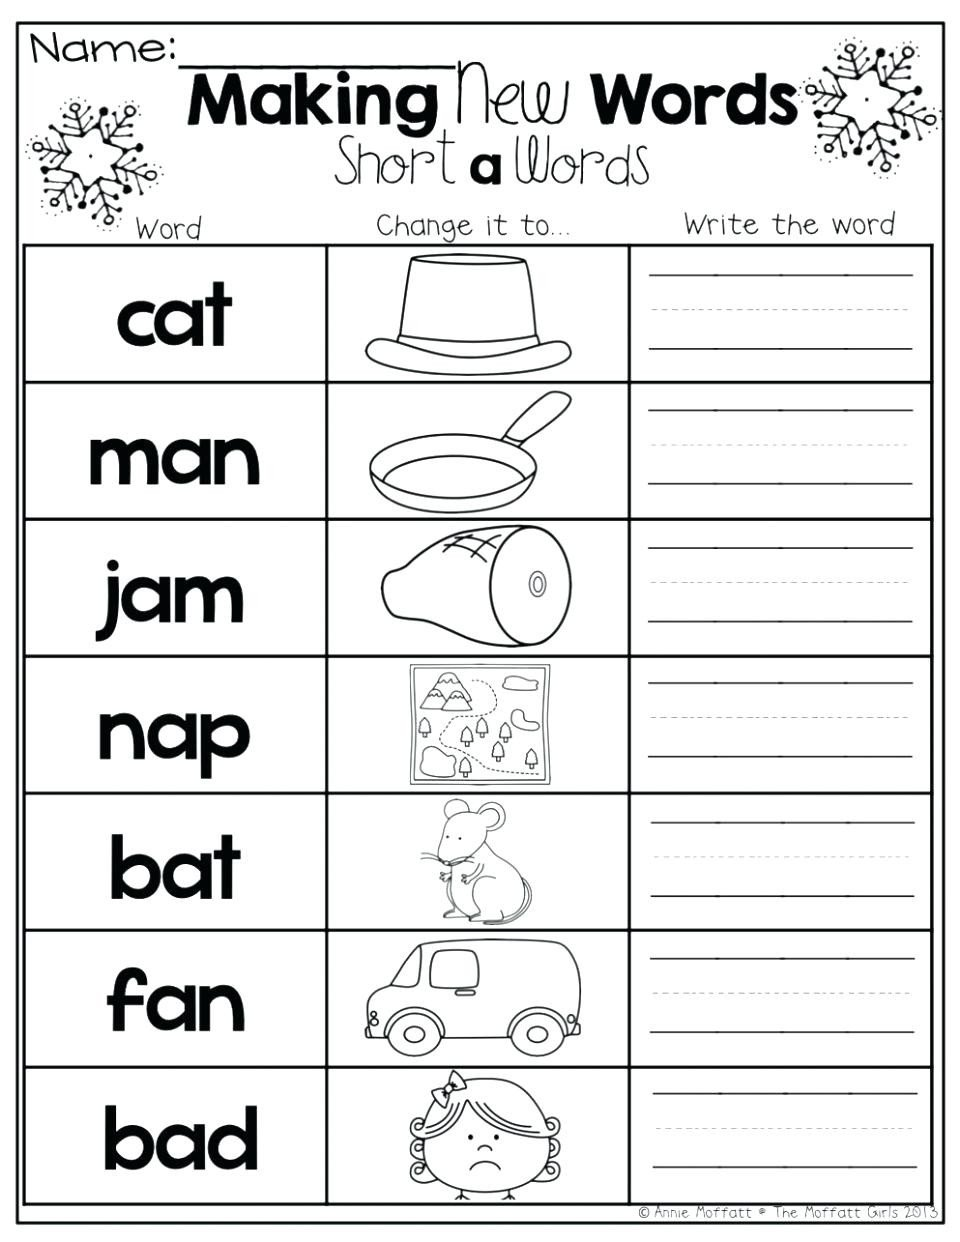 Blending sounds Worksheets for Kindergarten Math Worksheet 61 Incredible Kindergarten Phonics